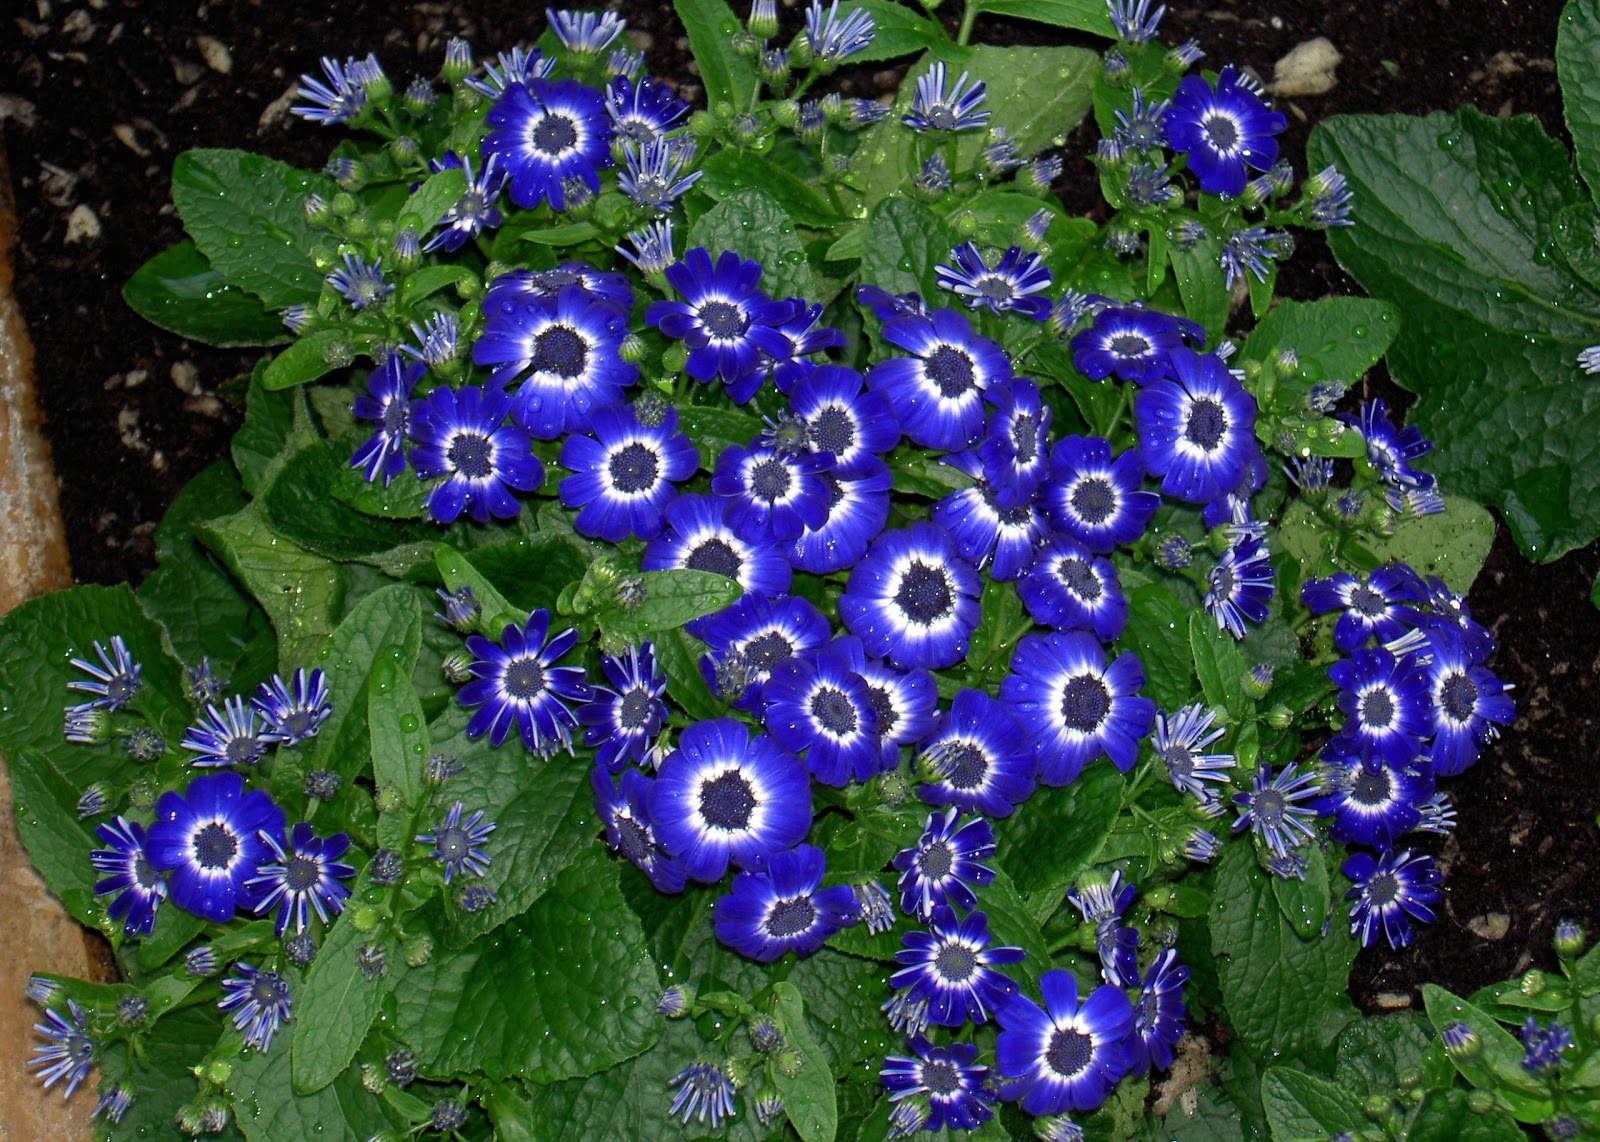 Blue Flower Images With Names